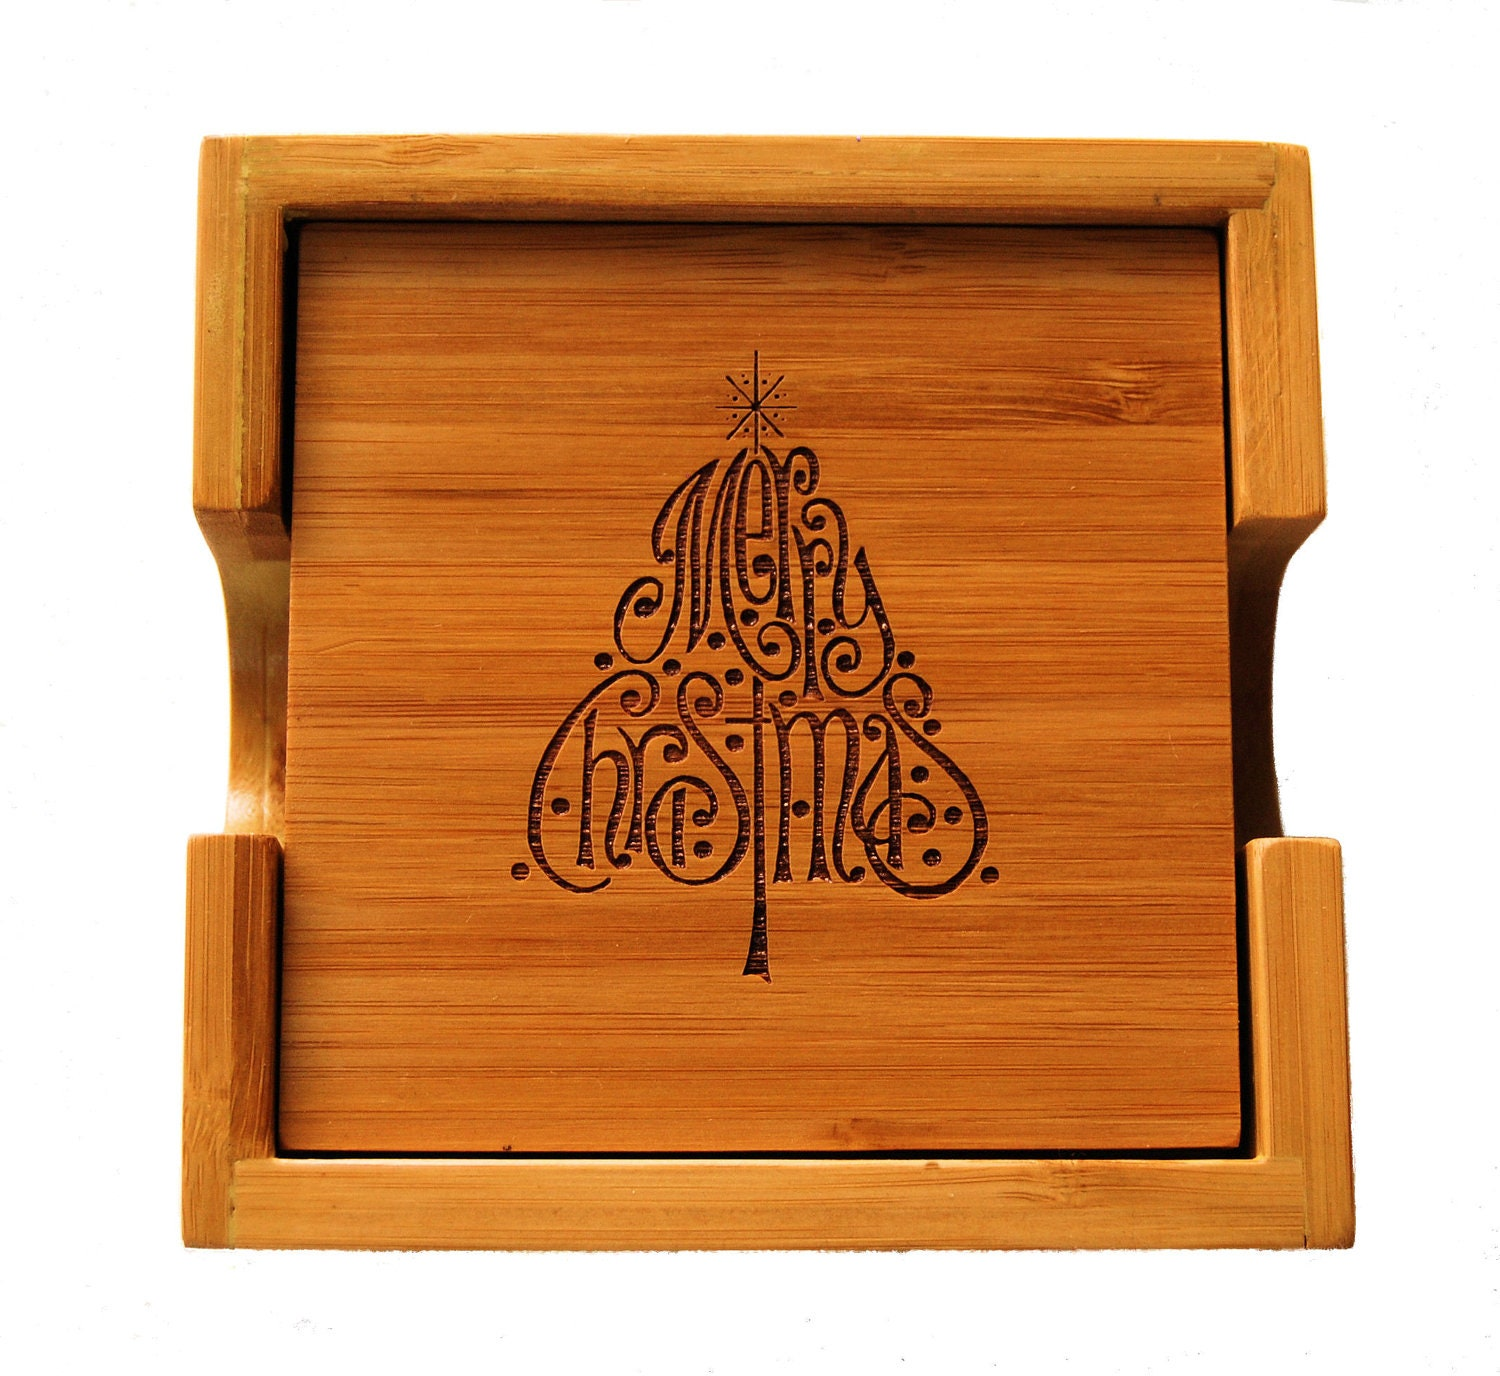 Bamboo Wood Laser Engraved Christmas Coasters Kitchen